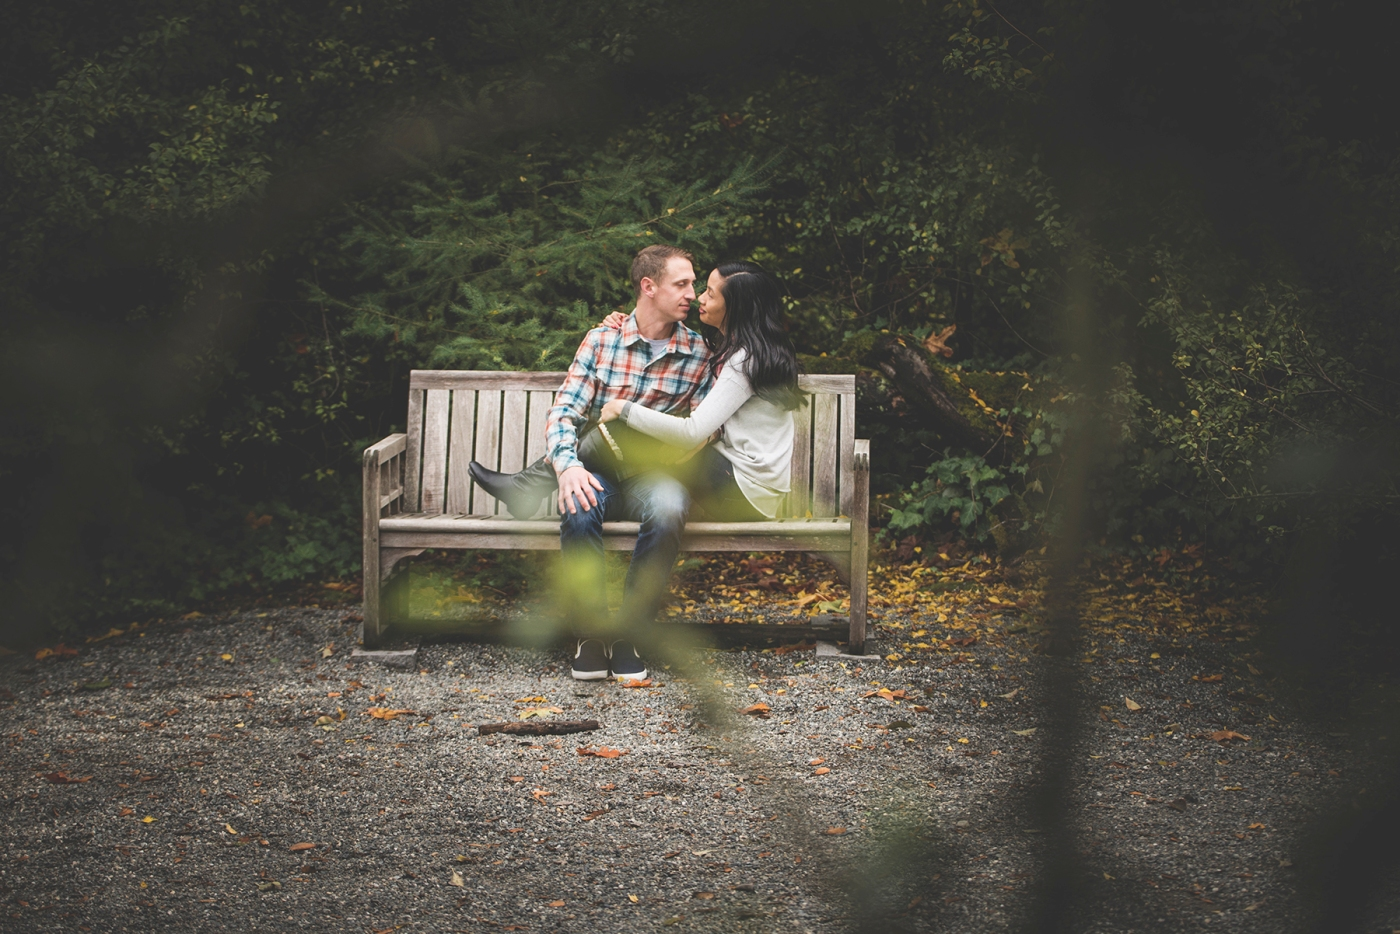 jane-speleers-photography-ju-bri-holiday-october-bellevue-botanical-garden-engagement-2016_dsc_5773